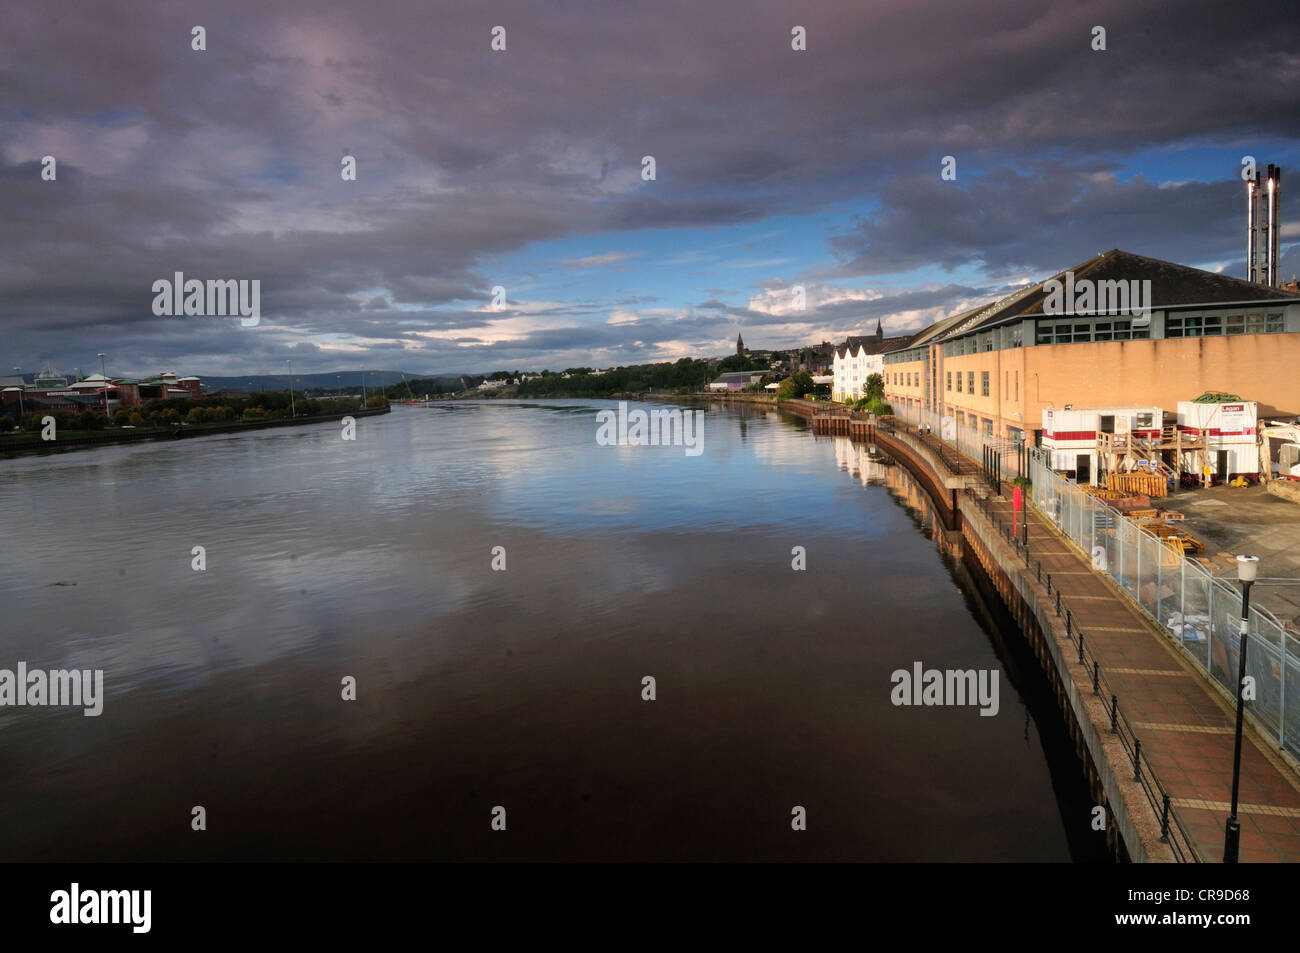 Foyle River, Derry, Derry County, North Ireland, Europe - Stock Image